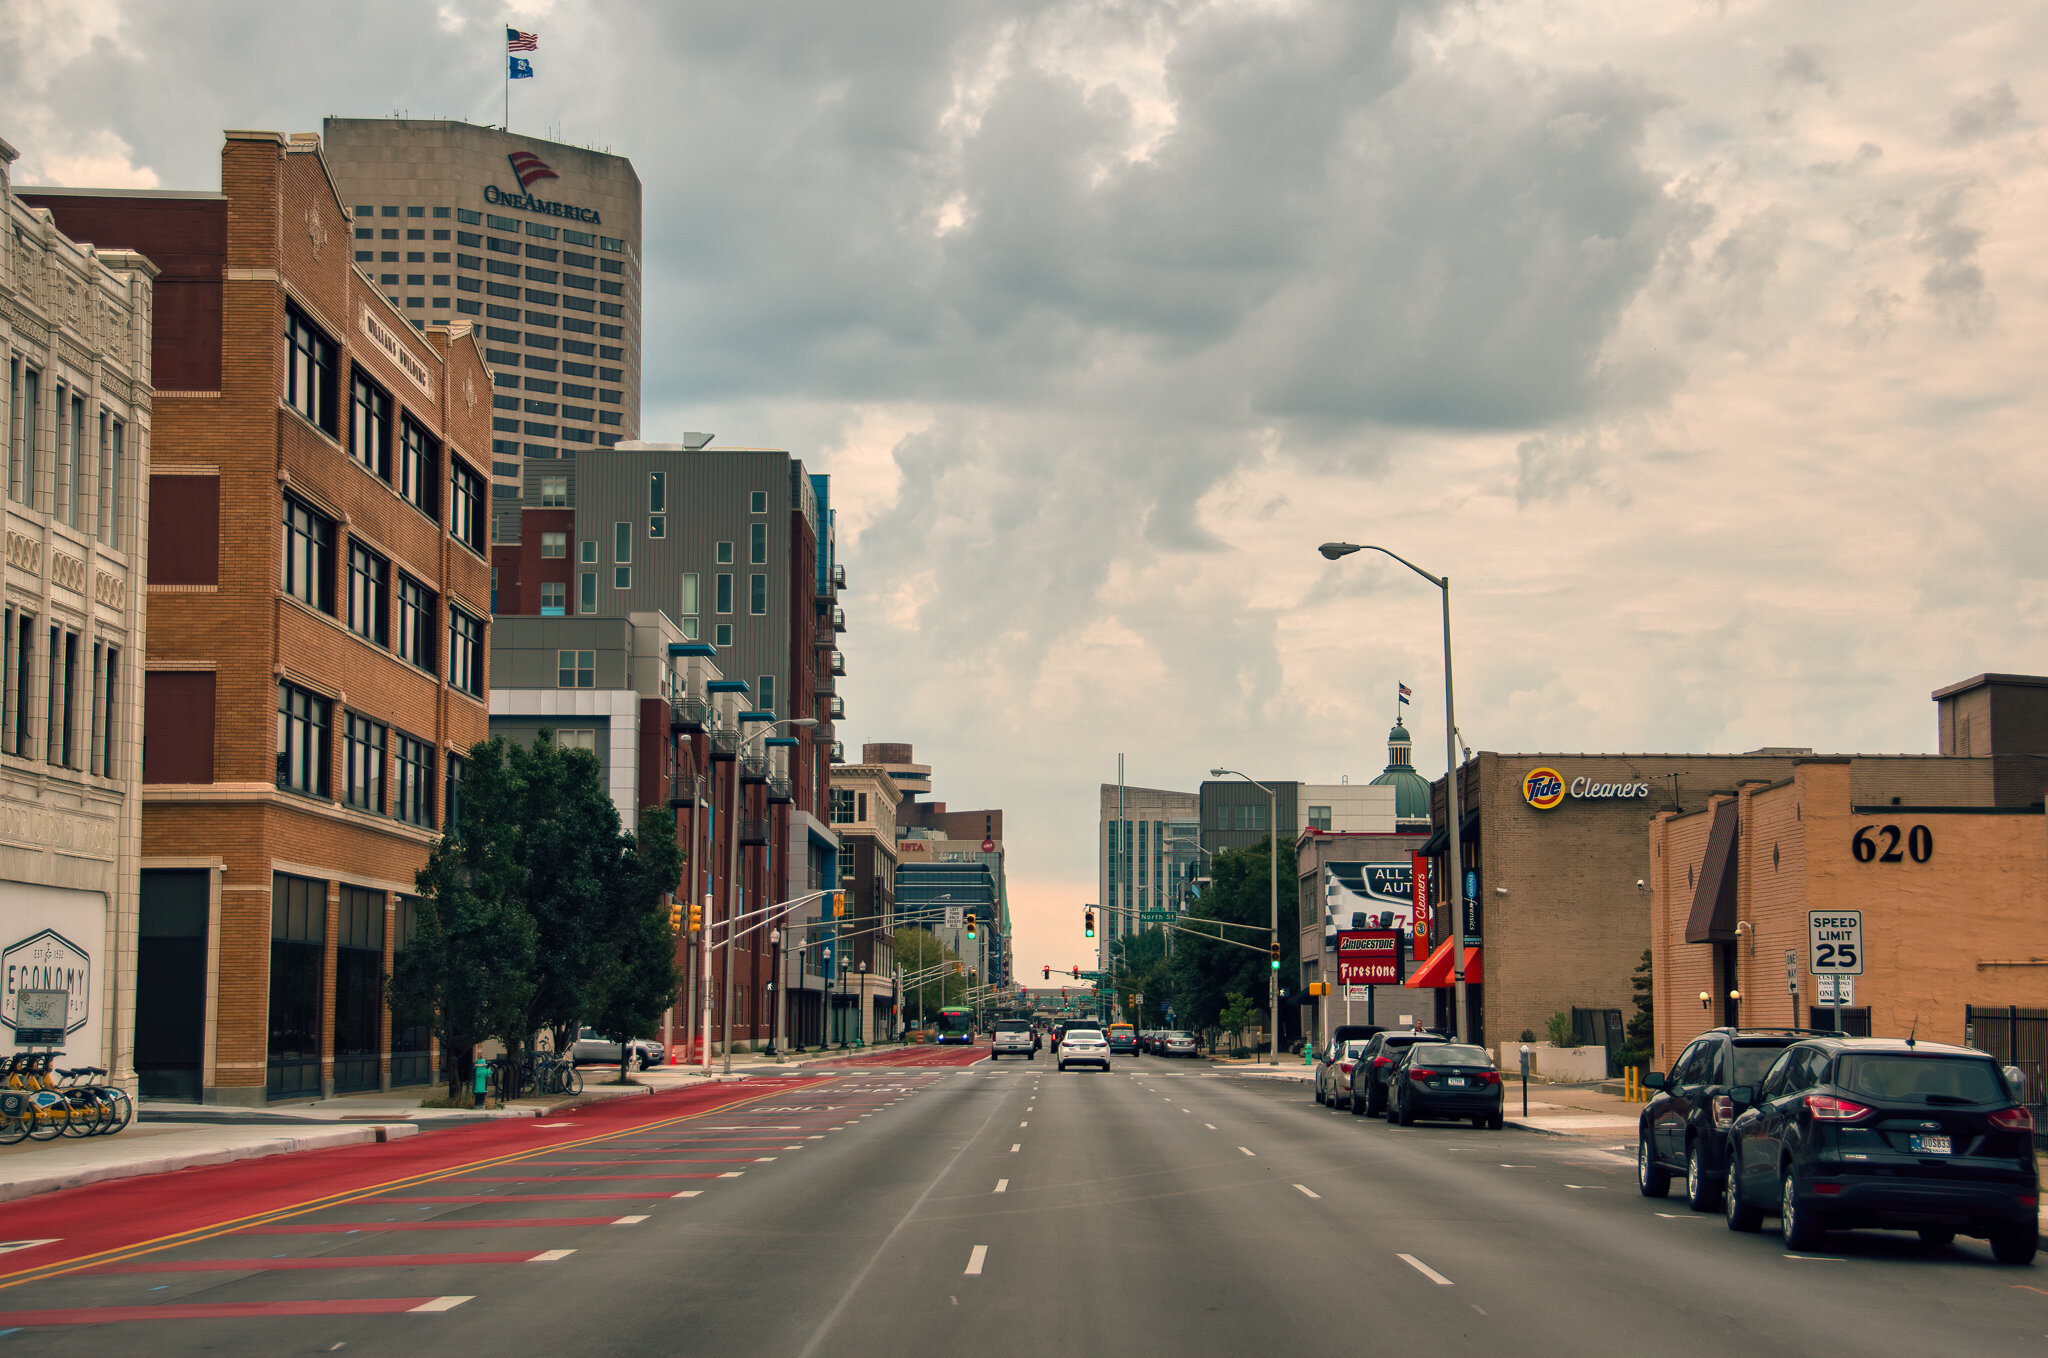 Capitol Avenue, looking south in Downtown Indianapolis.